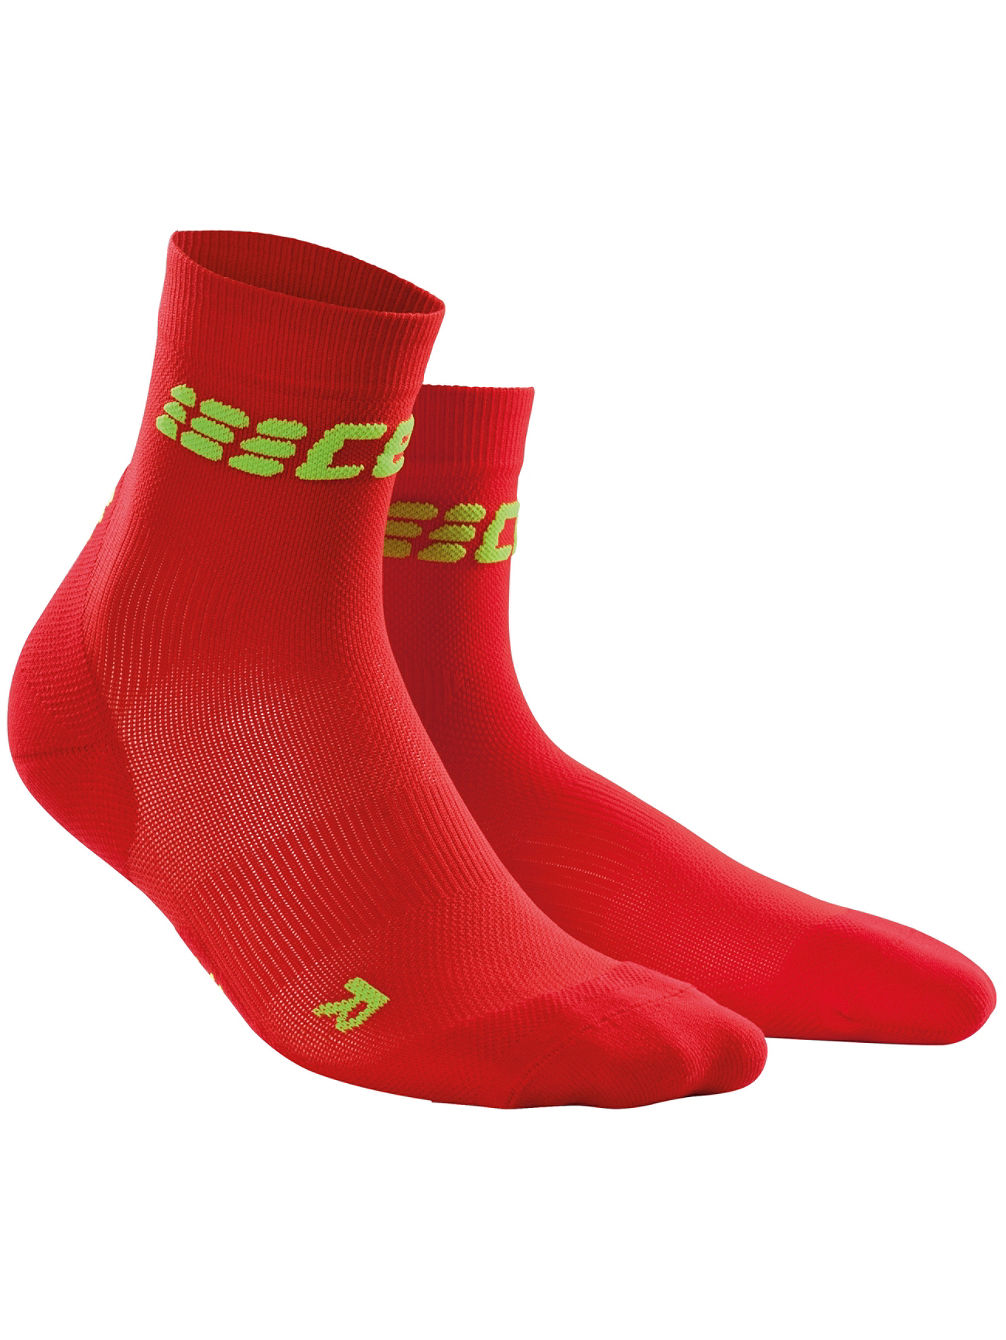 Ultralight Short Socks